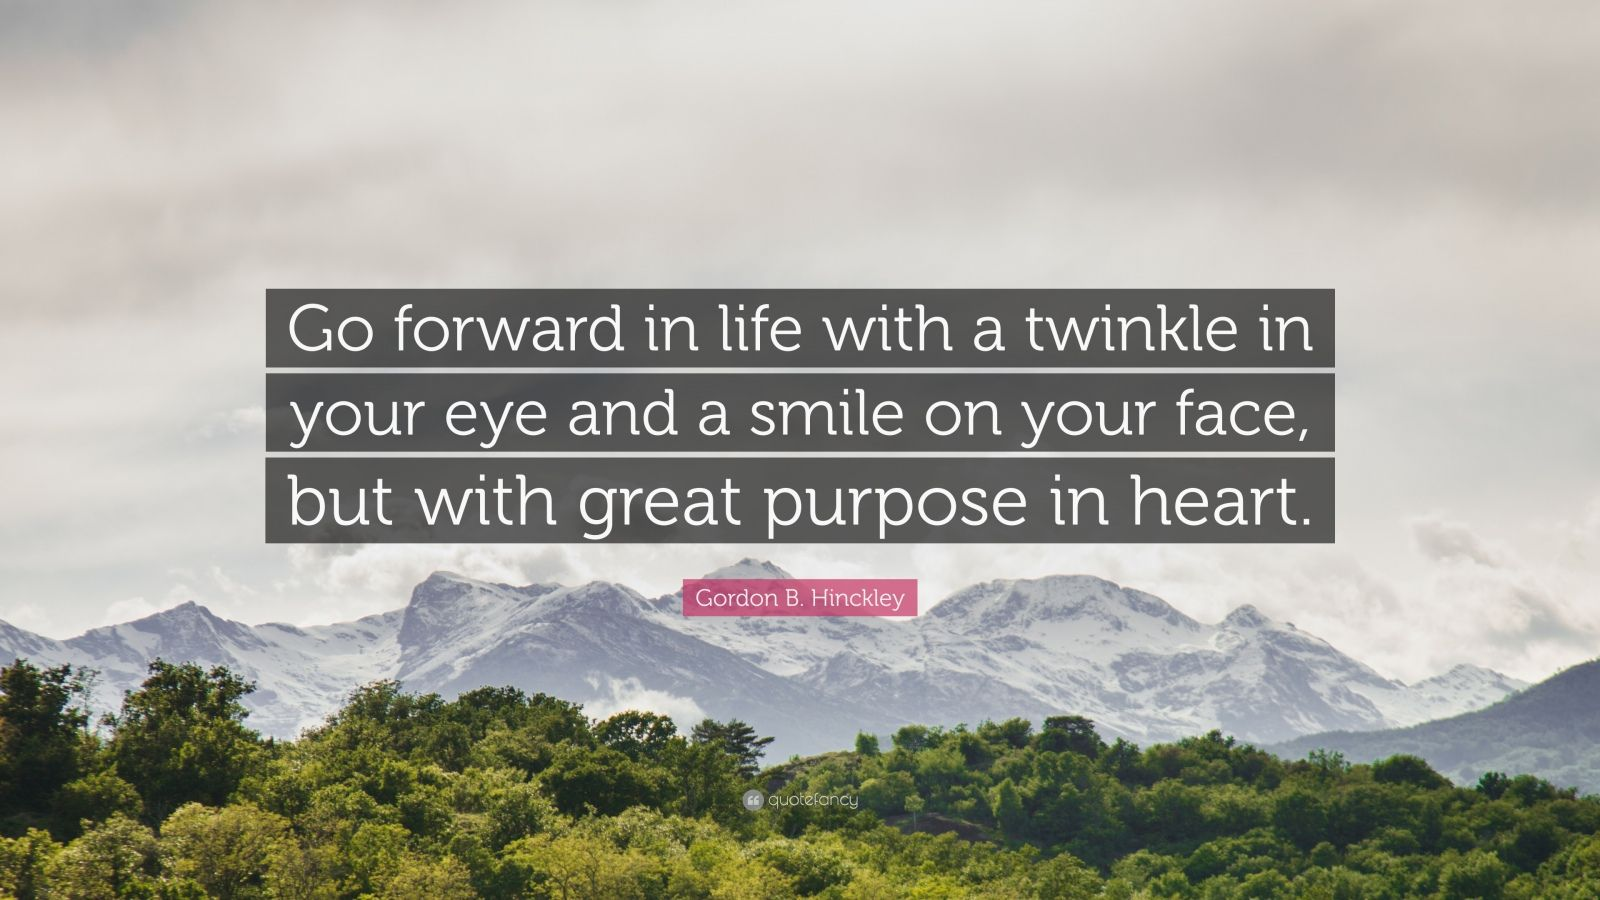 """Gordon B. Hinckley Quote: """"Go forward in life with a twinkle in your eye and a smile on your face, but with great purpose in heart."""""""